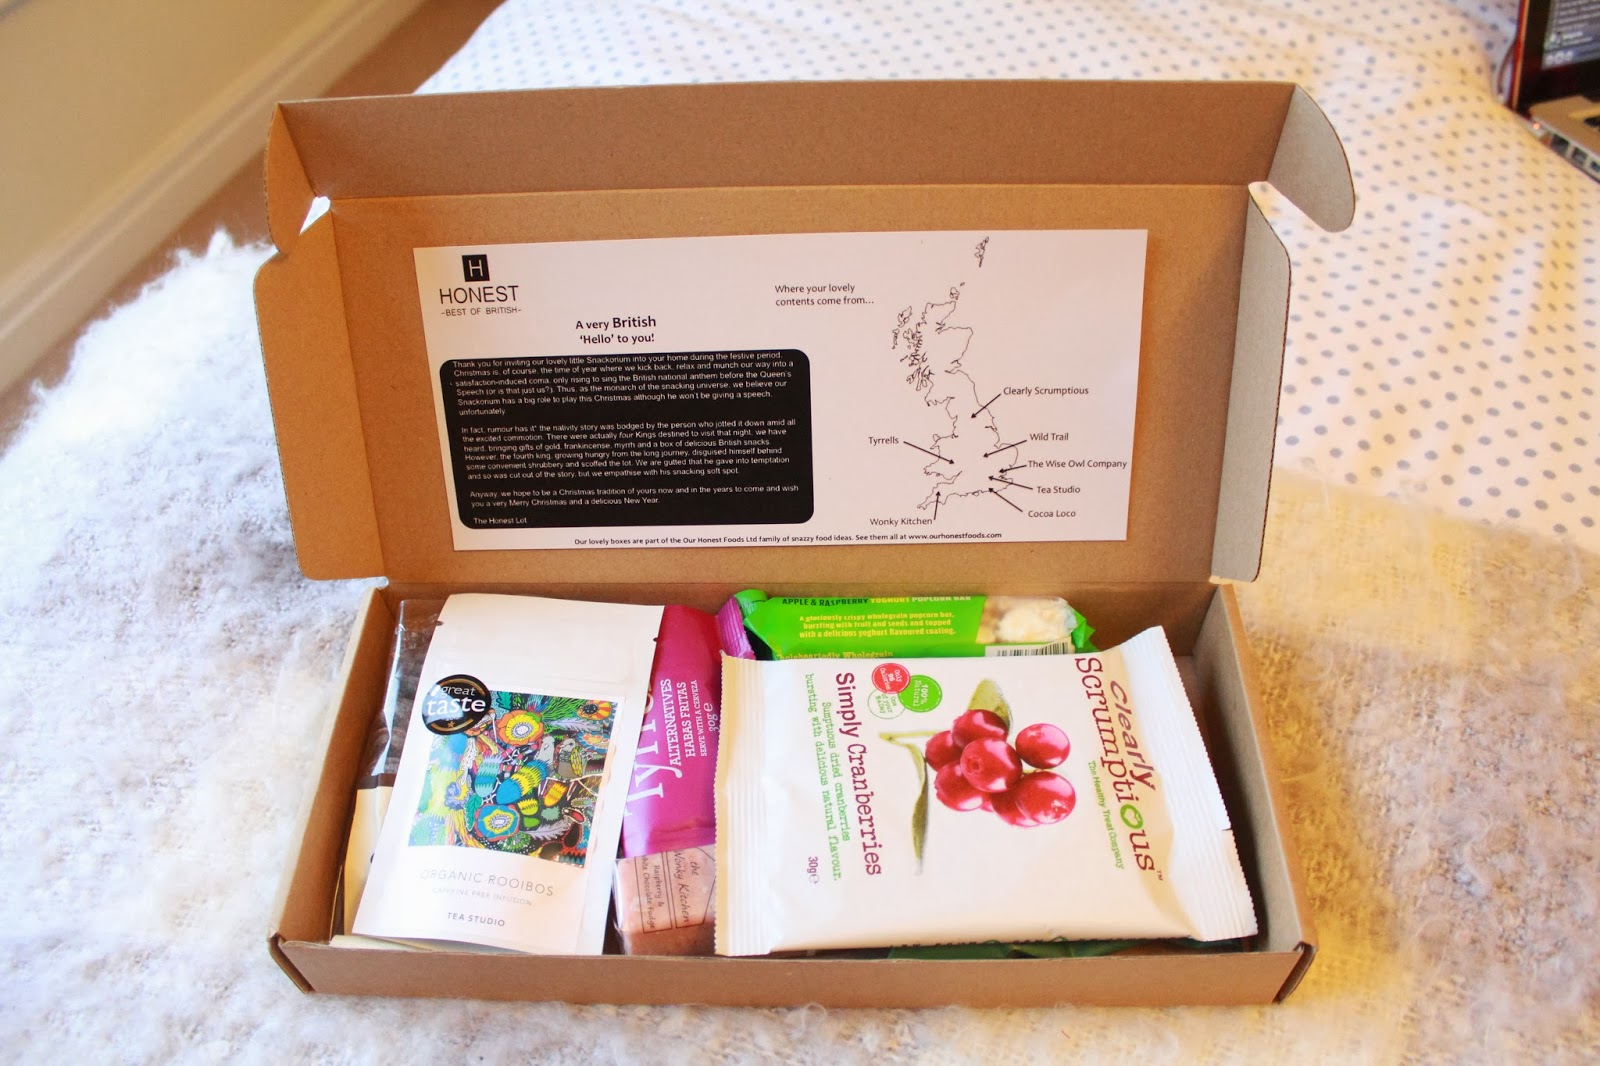 Our Honest Foods Snackorium Box